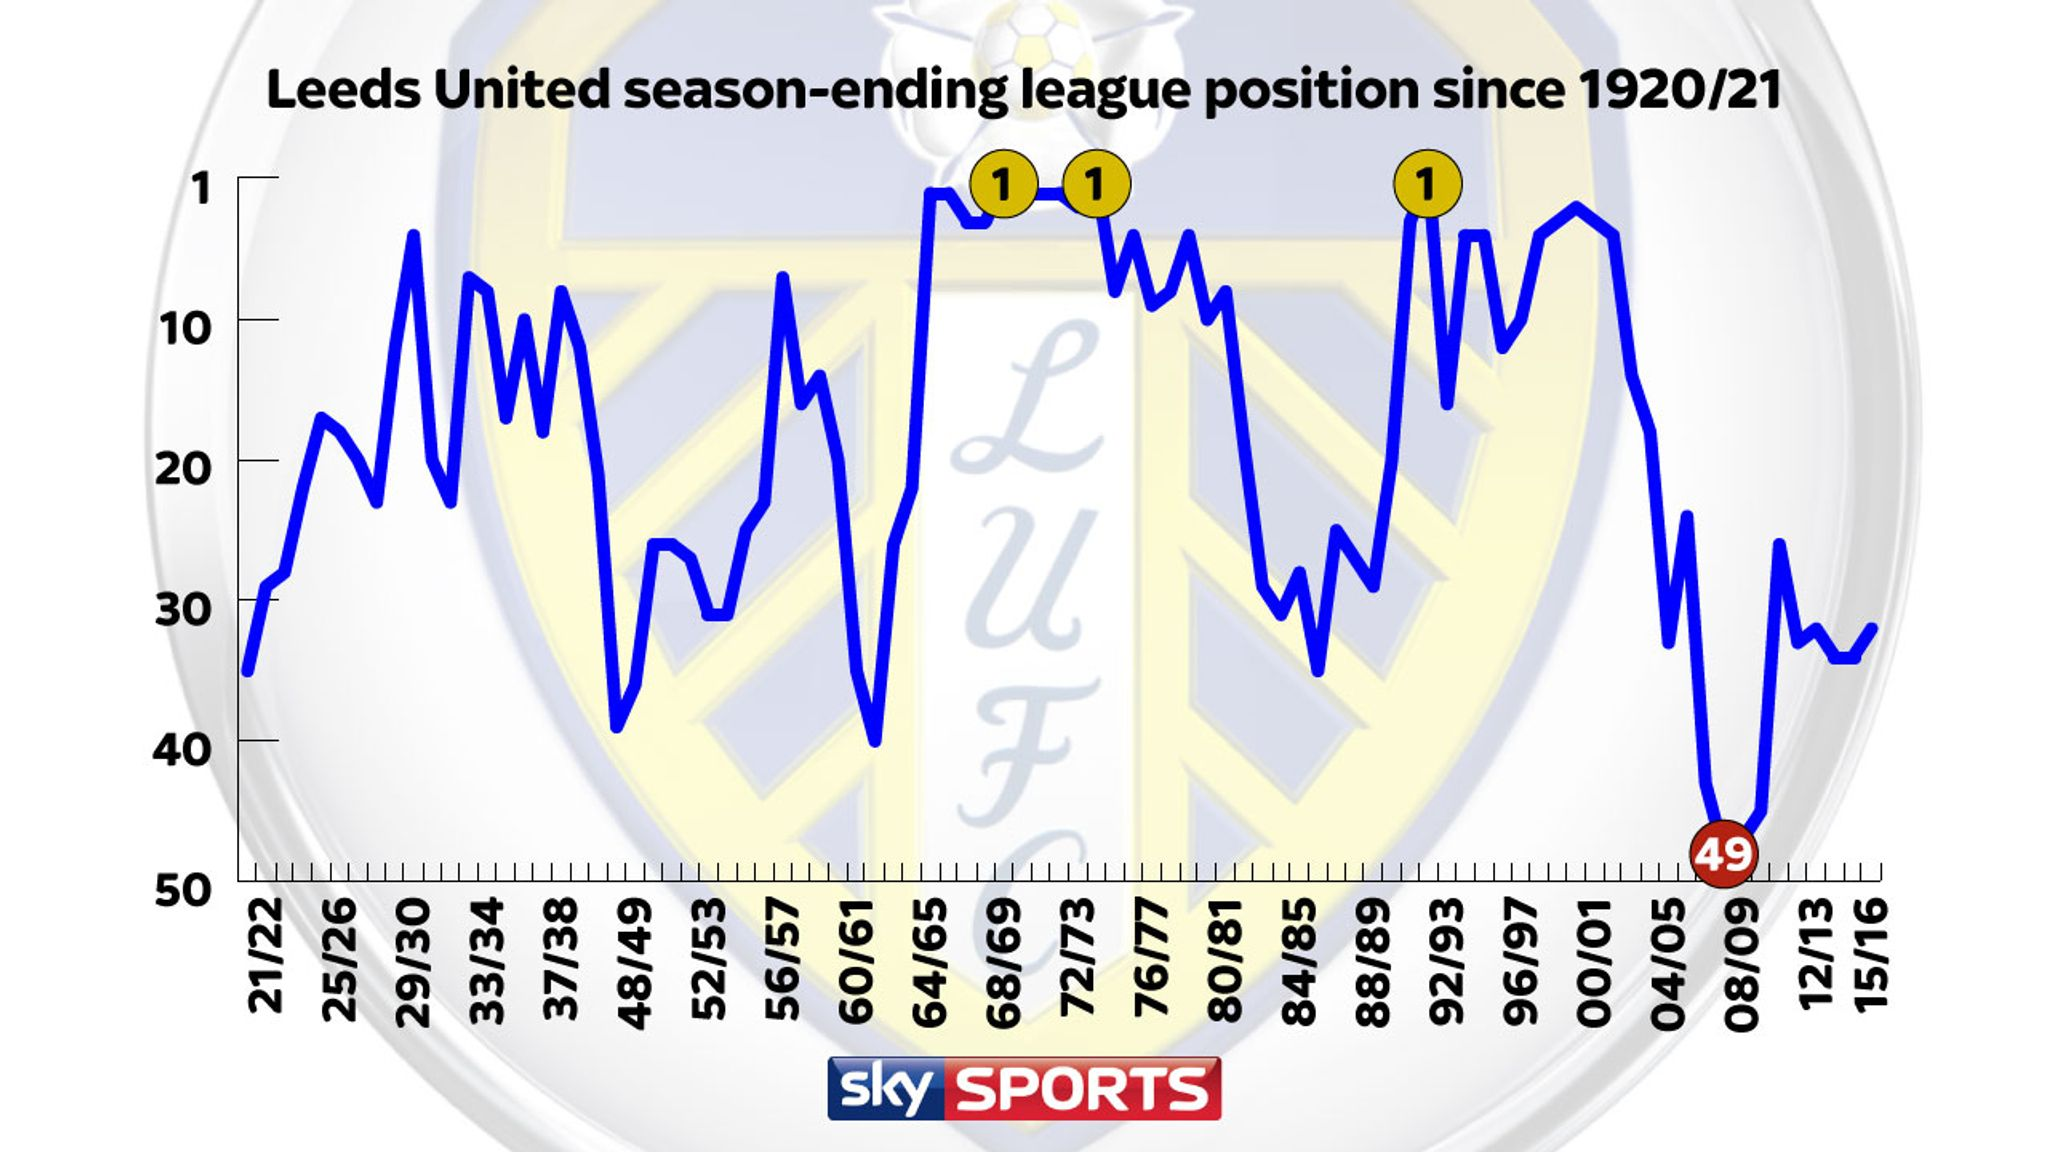 Leeds United England's 12th biggest club, according to Sky Sports